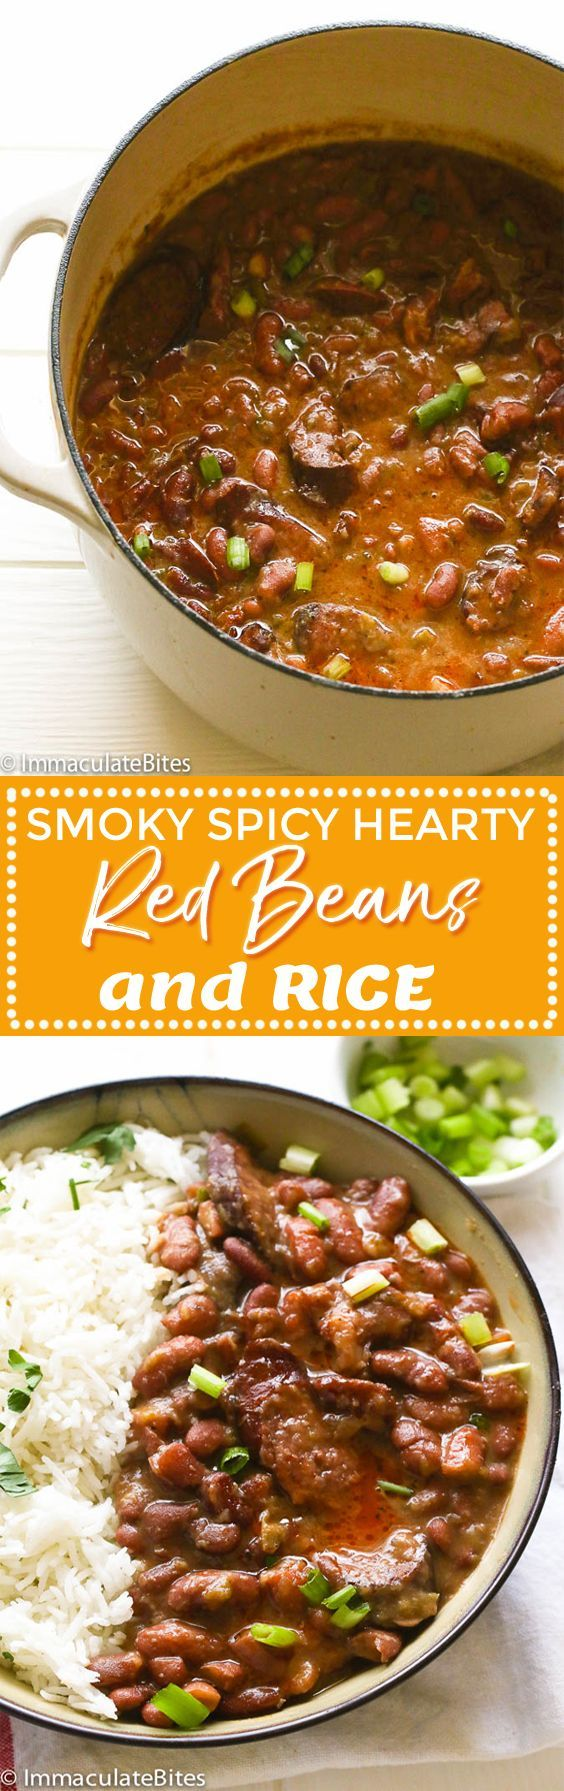 southern red beans and rice #dinner #beans #southern #food #recipe